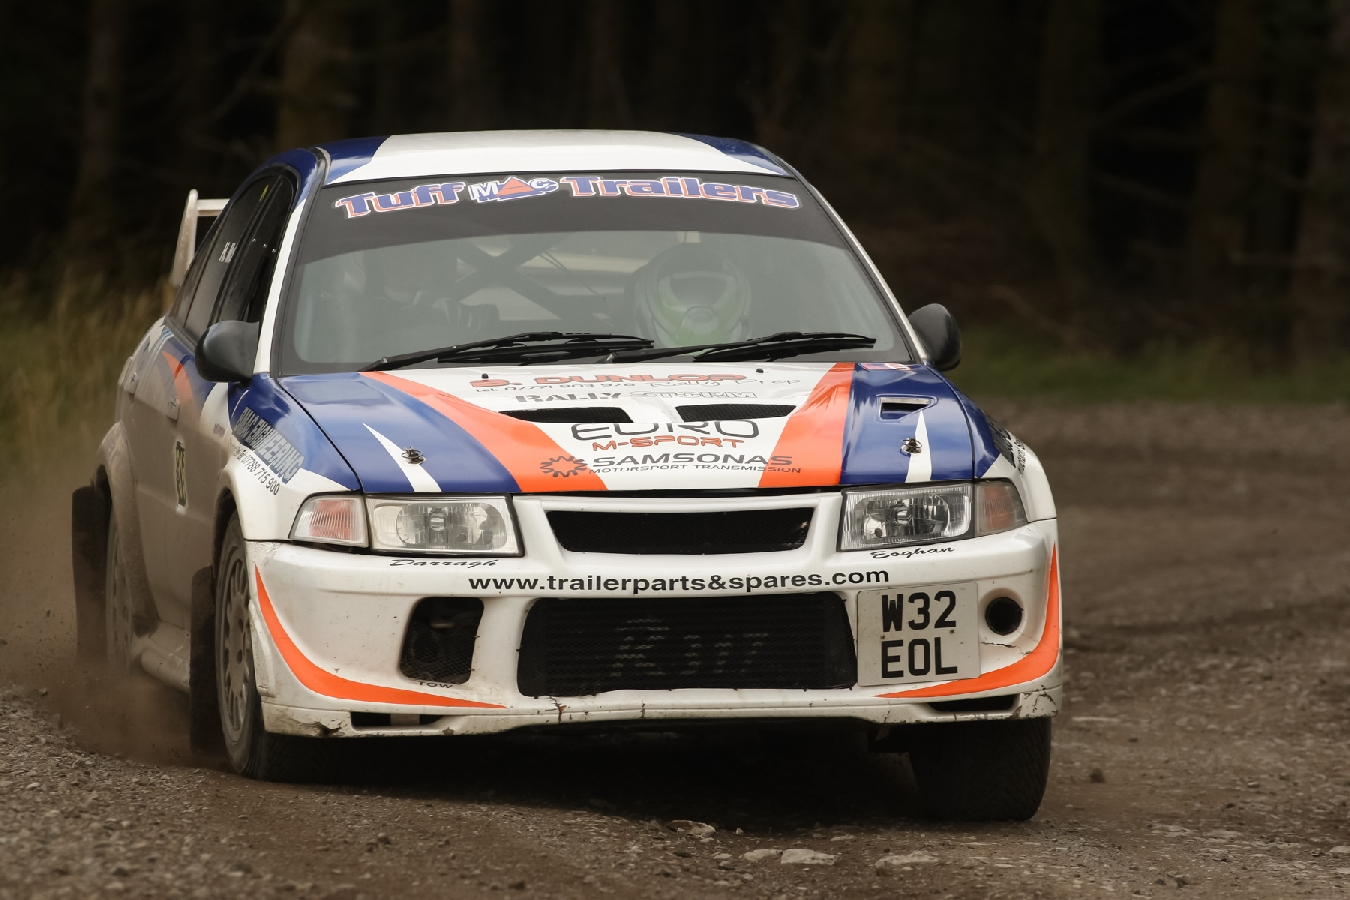 Enniskillen Press Release Two Trailer Parts and Spares Lakeland Stages Rally 2017